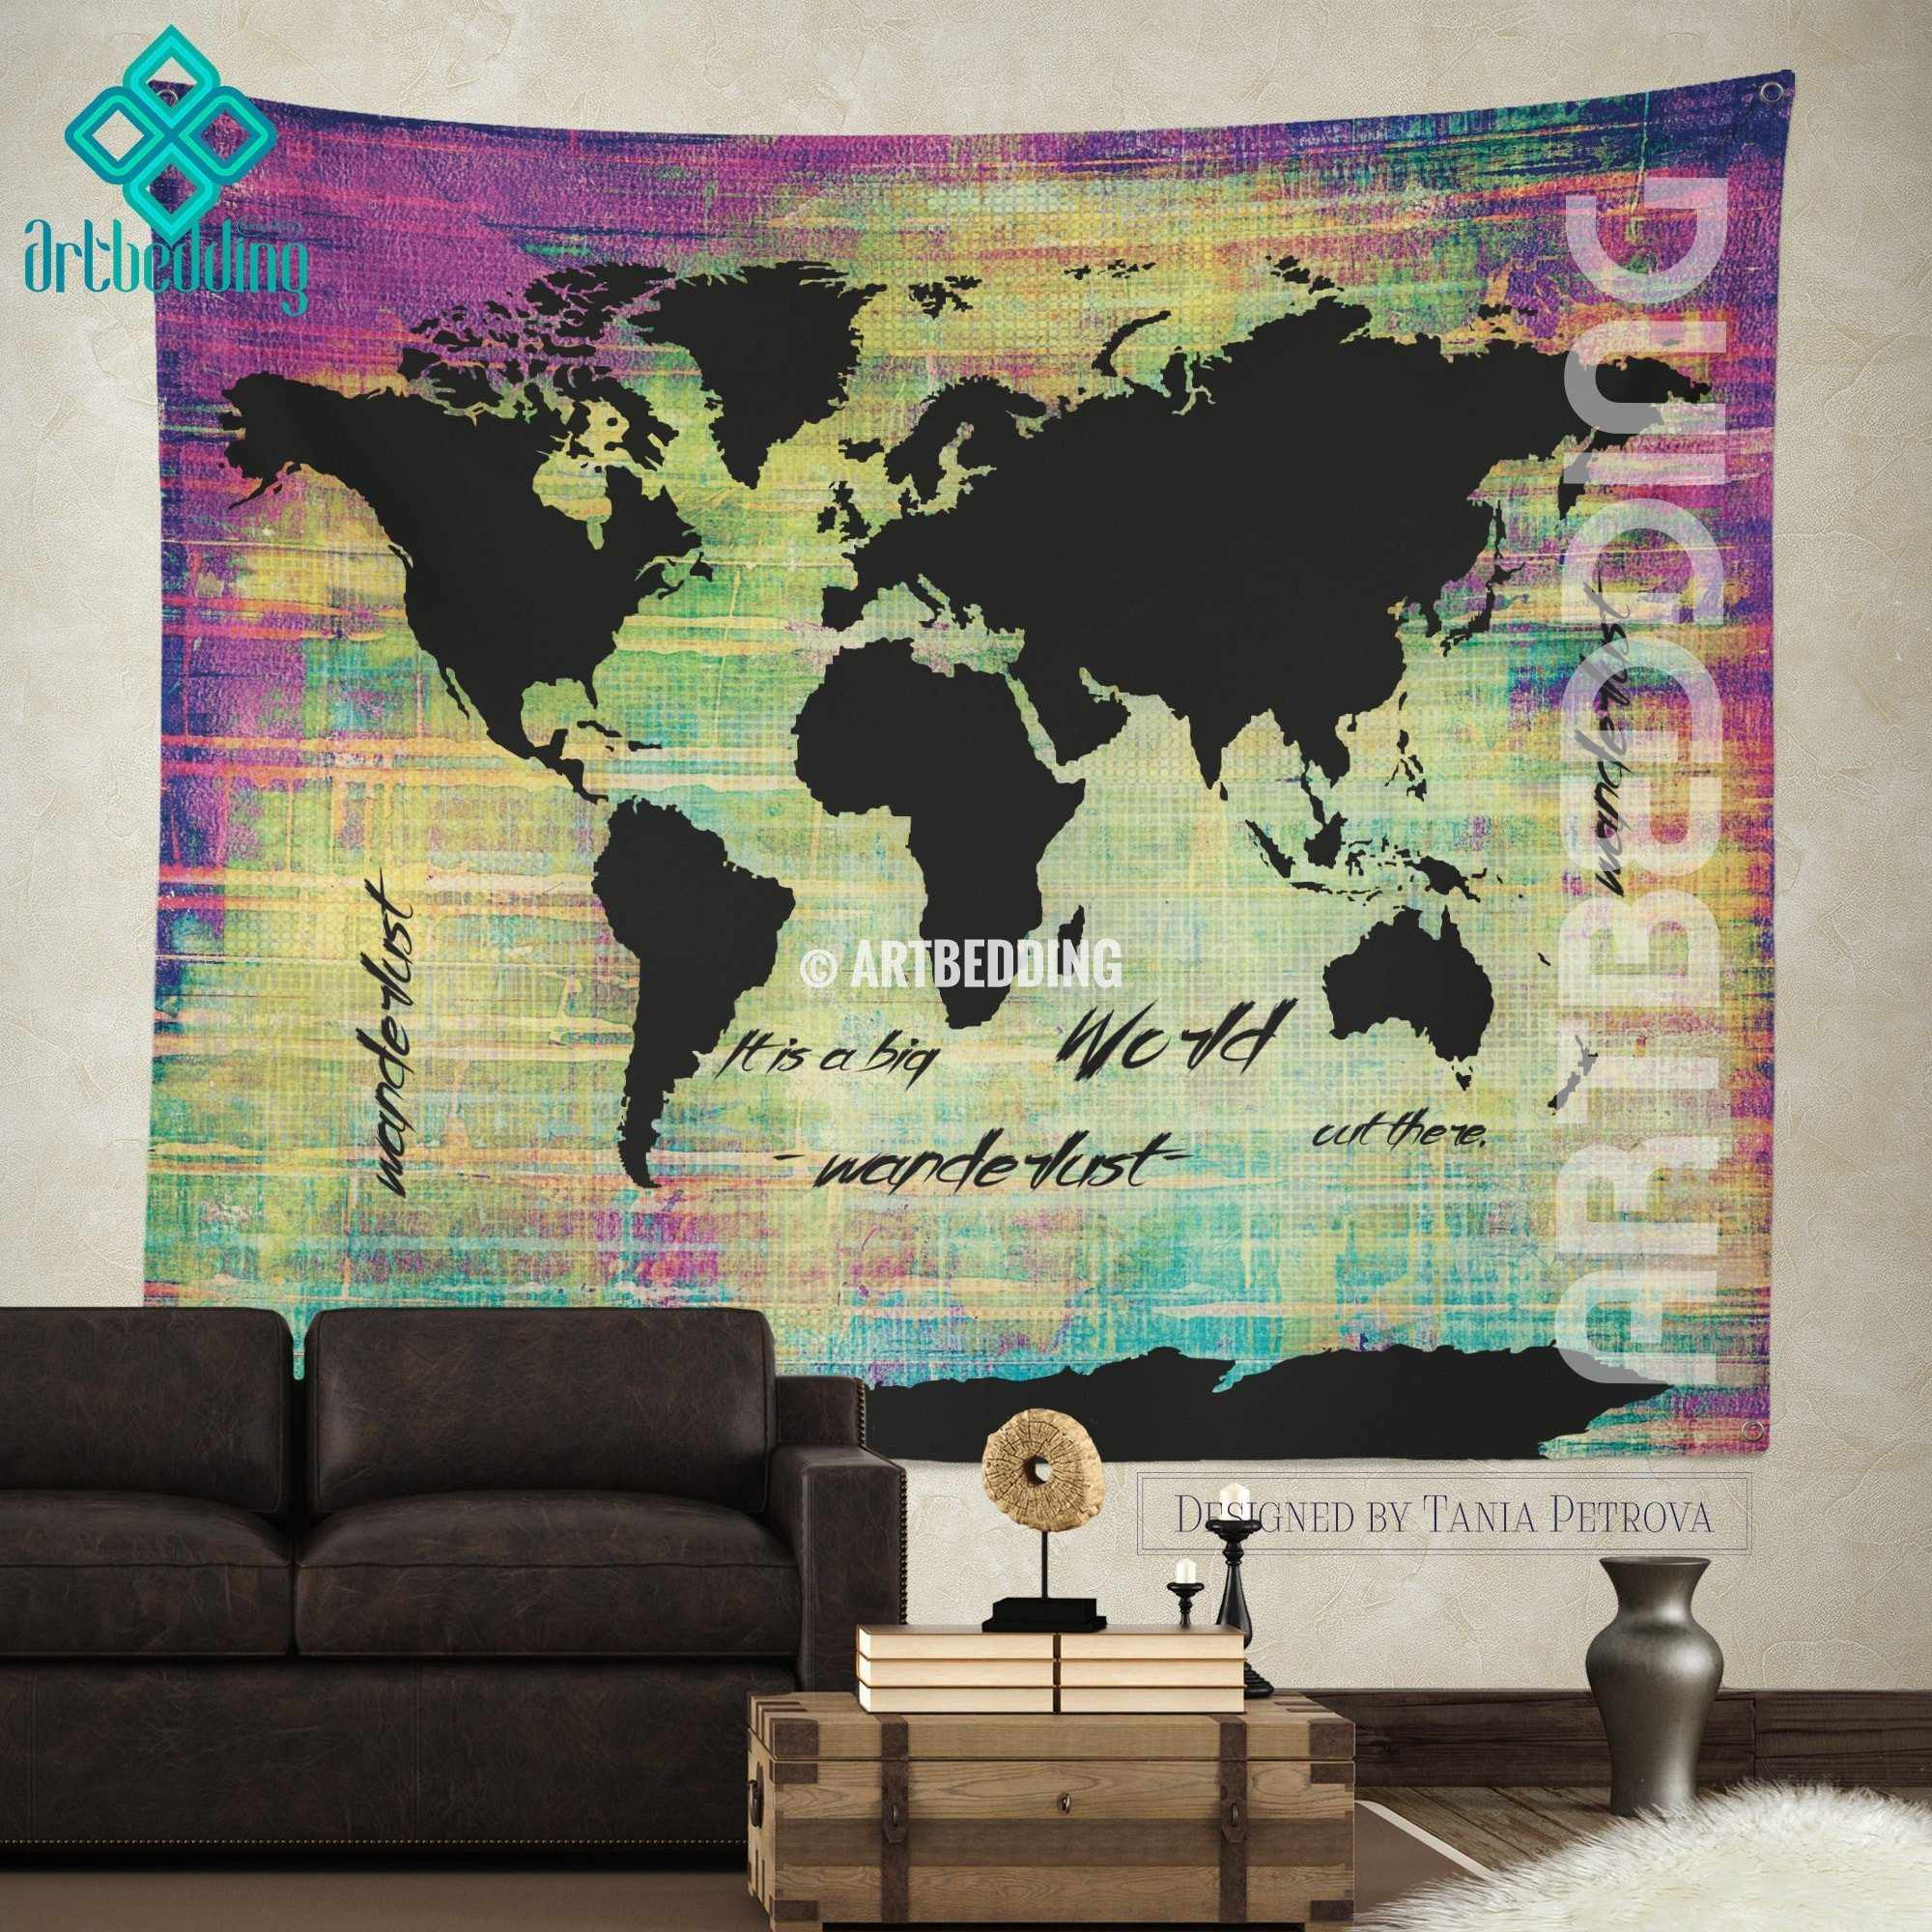 Bohemian world map watercolor wall tapestry grunge world map wall bohemian world map watercolor wall tapestry grunge world map wall tapestryhippie tapestry wall gumiabroncs Choice Image